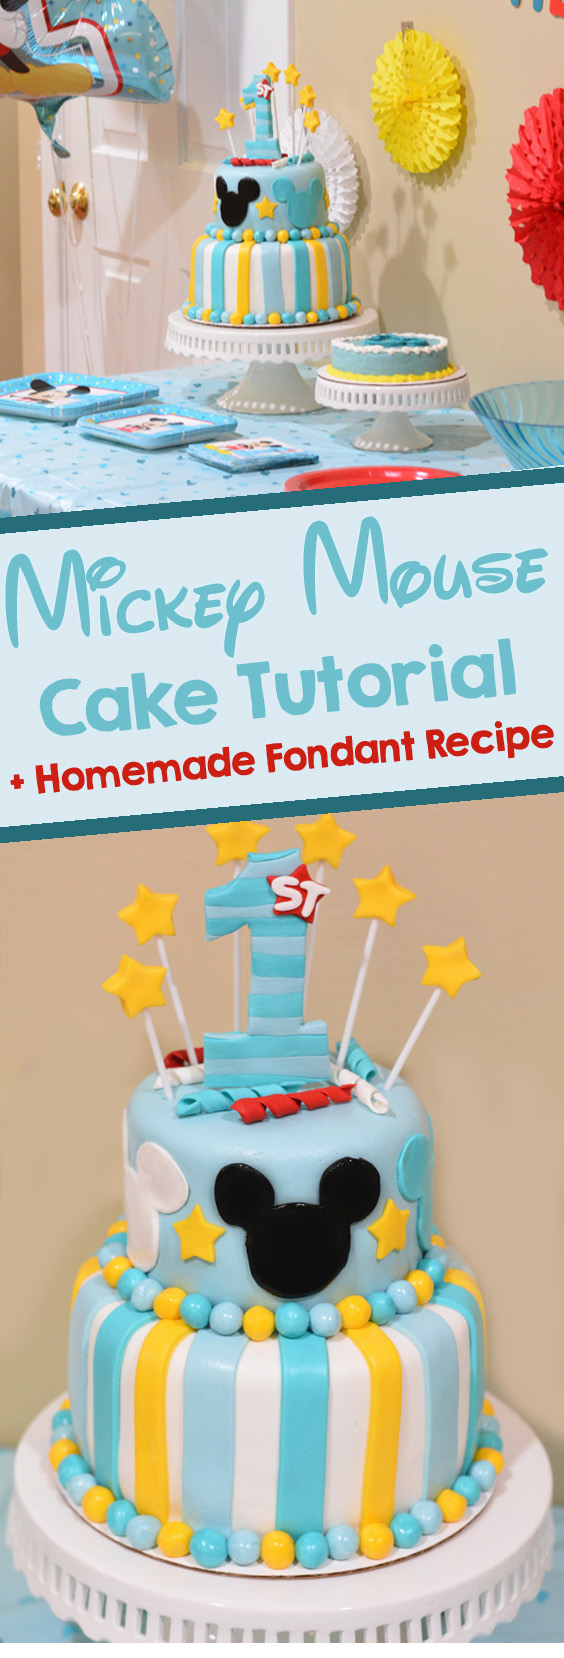 Magnificent How To Make A Mickey Mouse Cake With Fondant Mommys Fabulous Finds Funny Birthday Cards Online Sheoxdamsfinfo